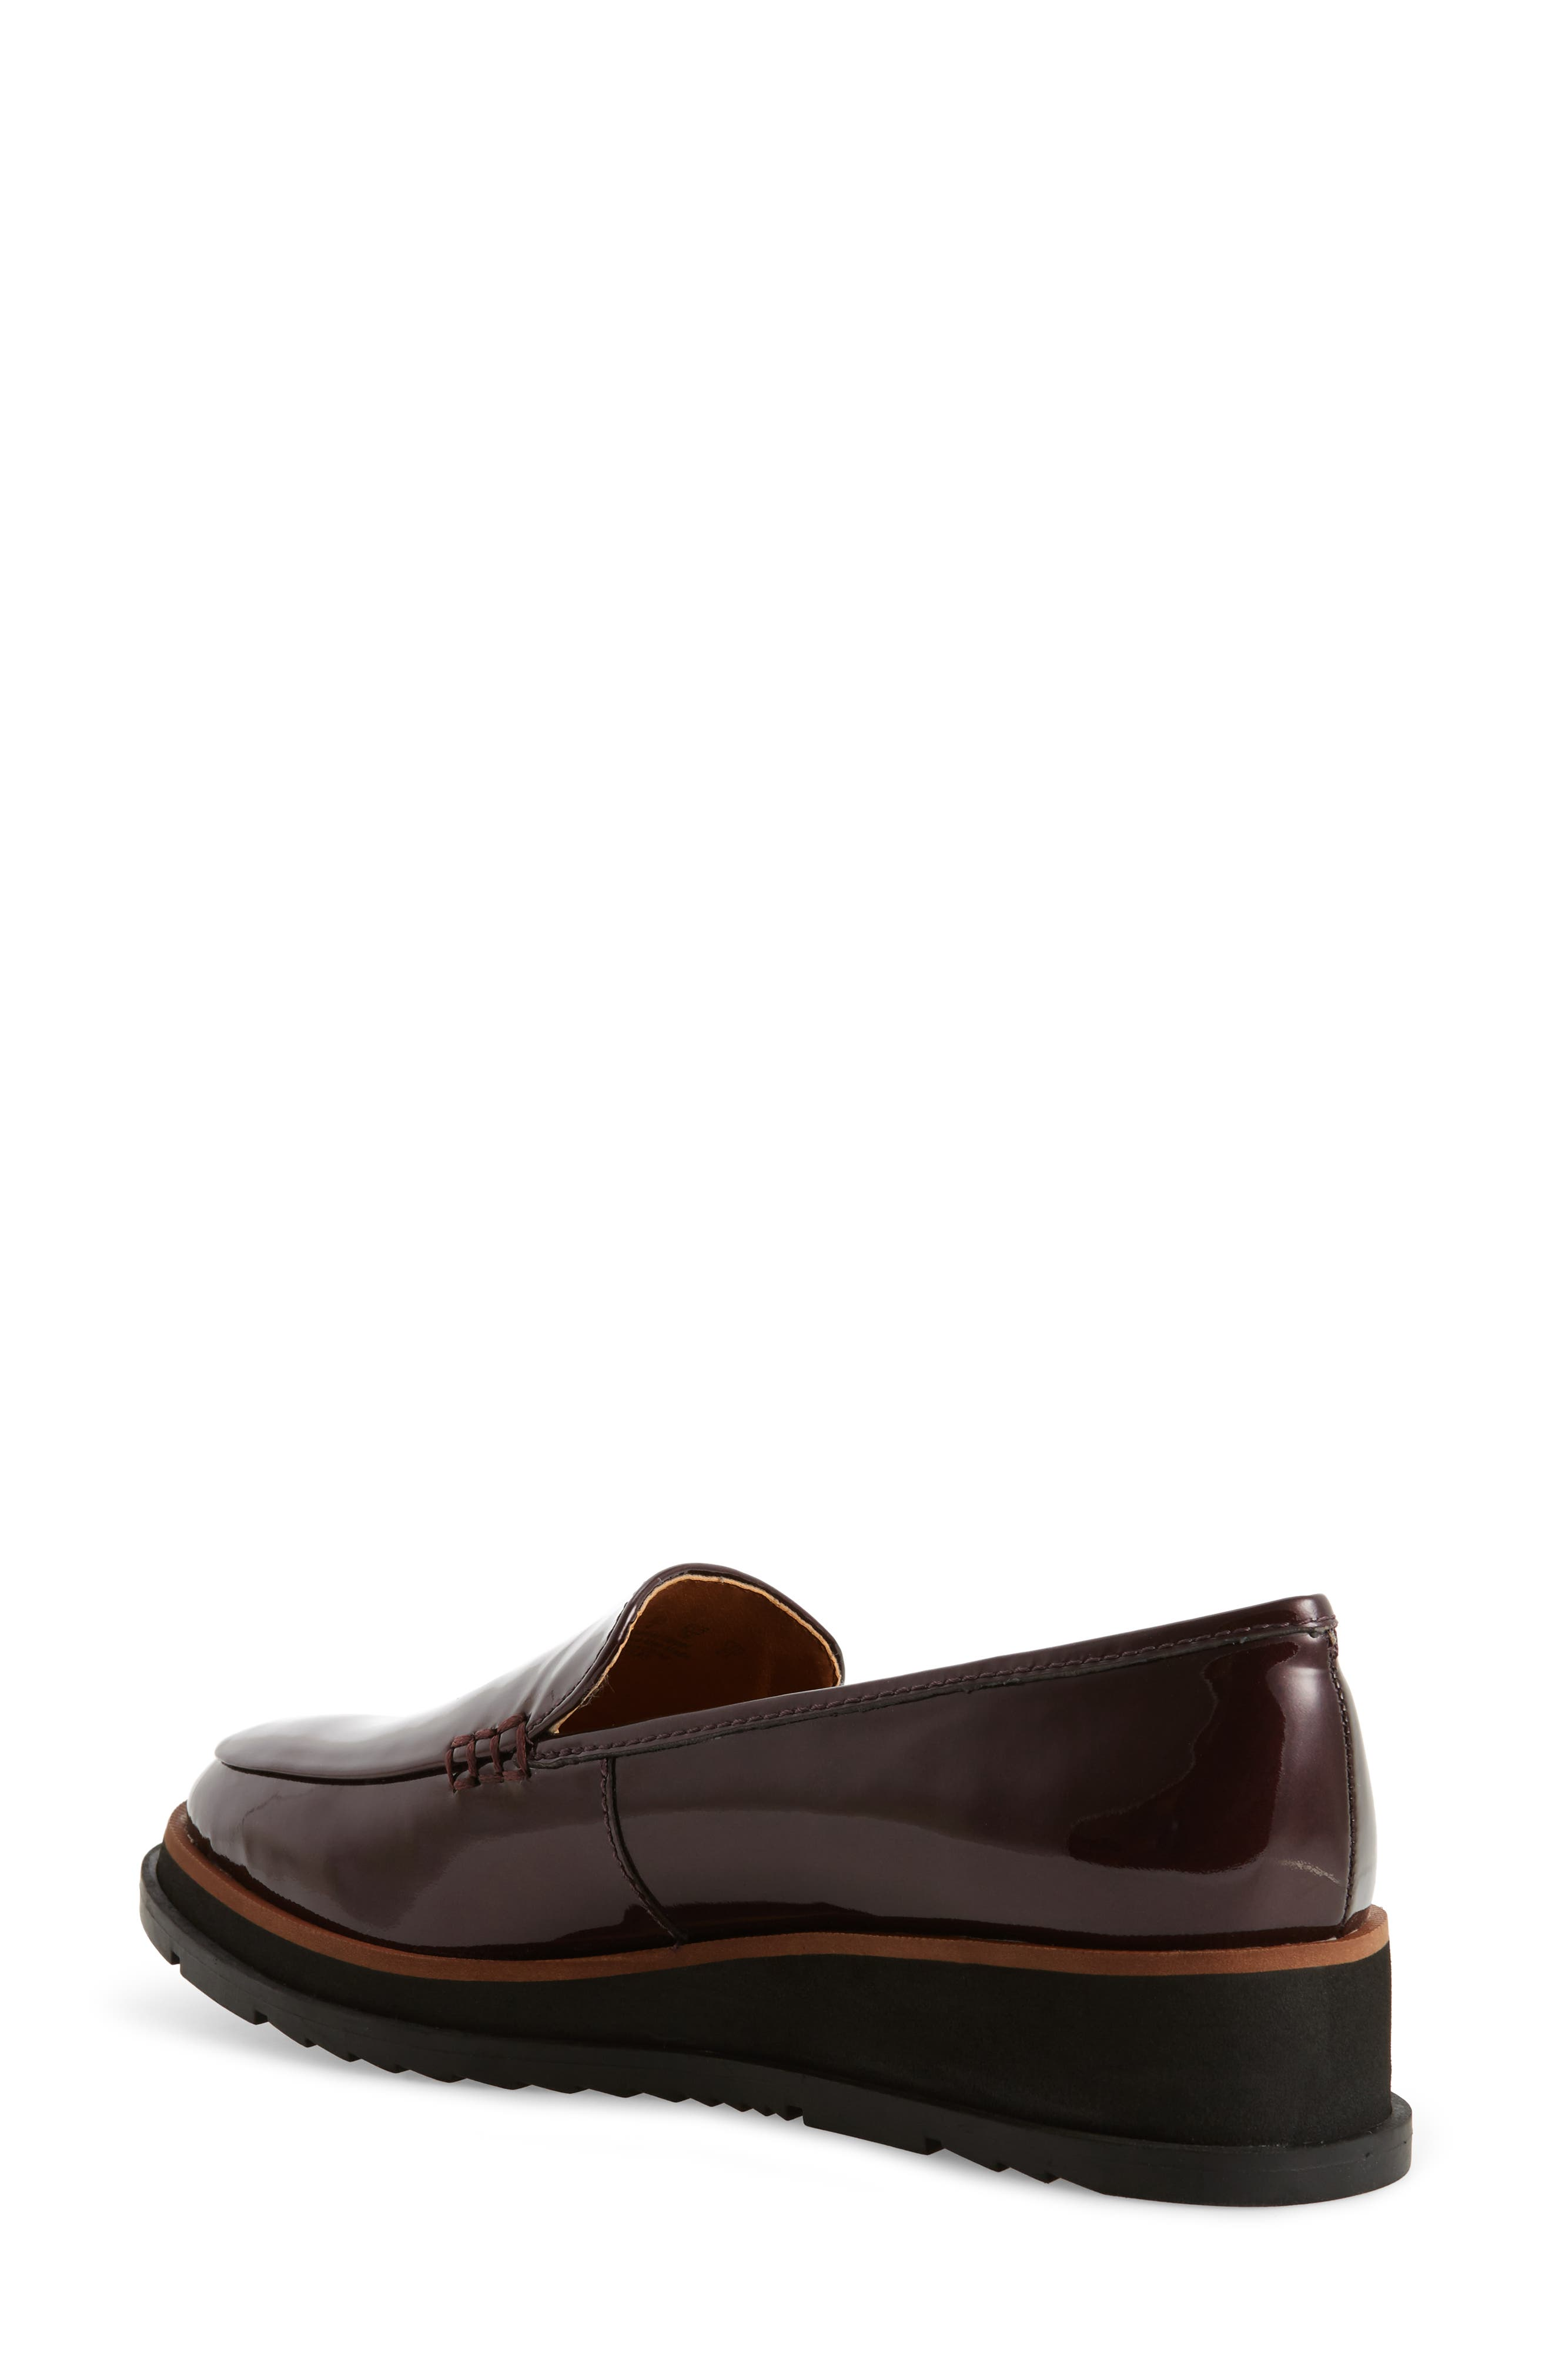 Ayers Loafer Flat,                             Alternate thumbnail 15, color,